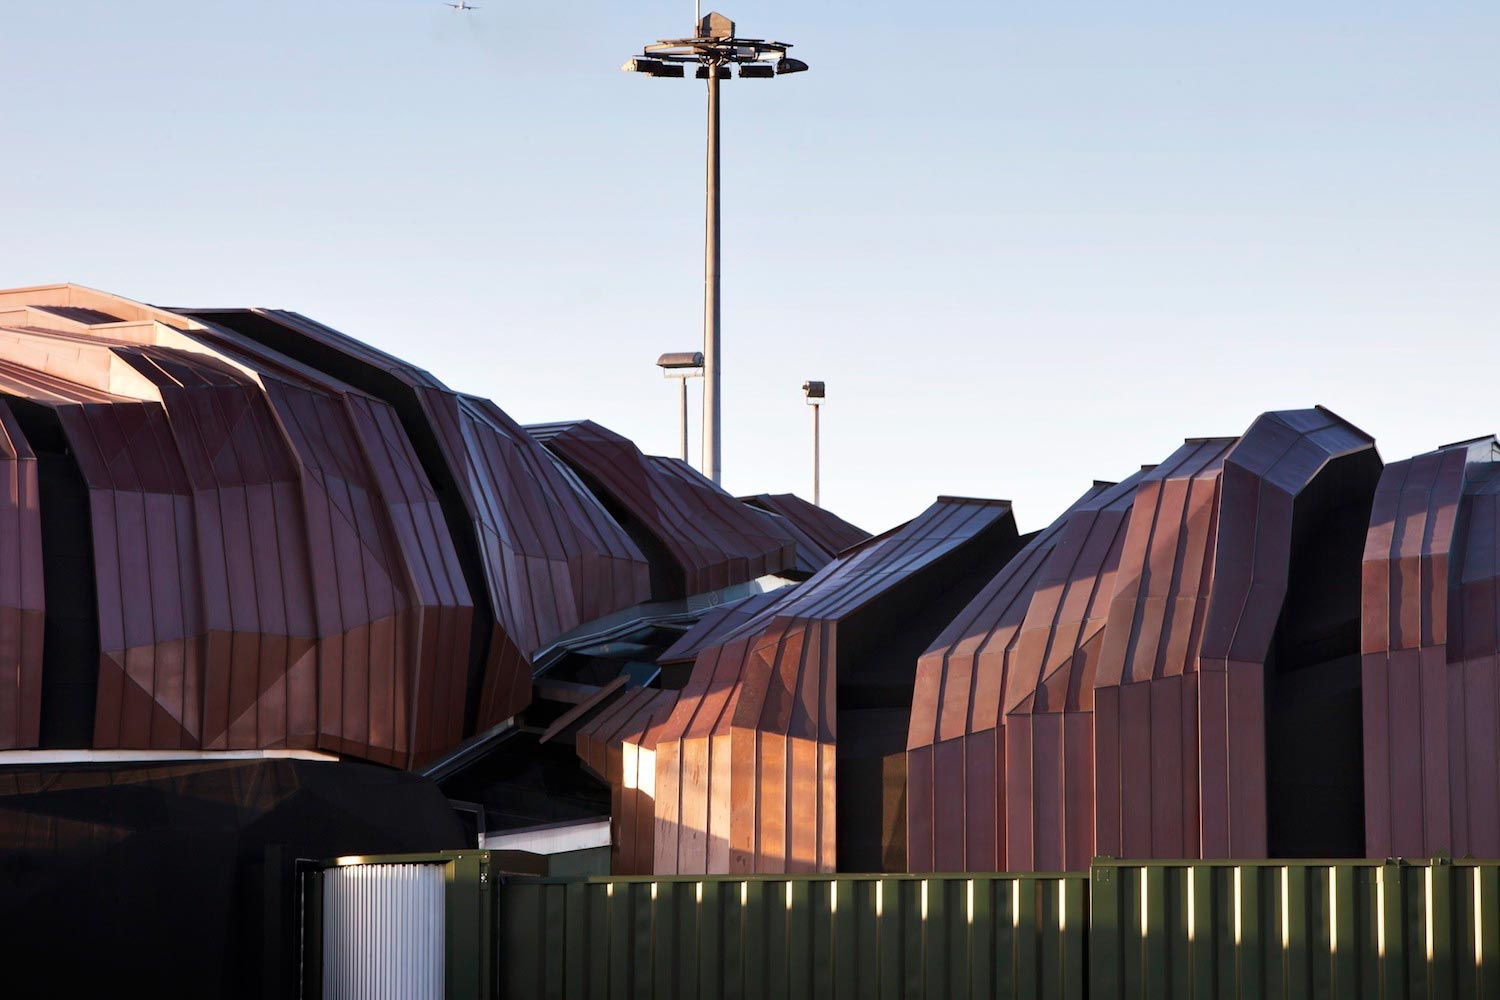 Unique Edgy And Aesthetic Design Of The Wellington International Airport Passenger Terminal